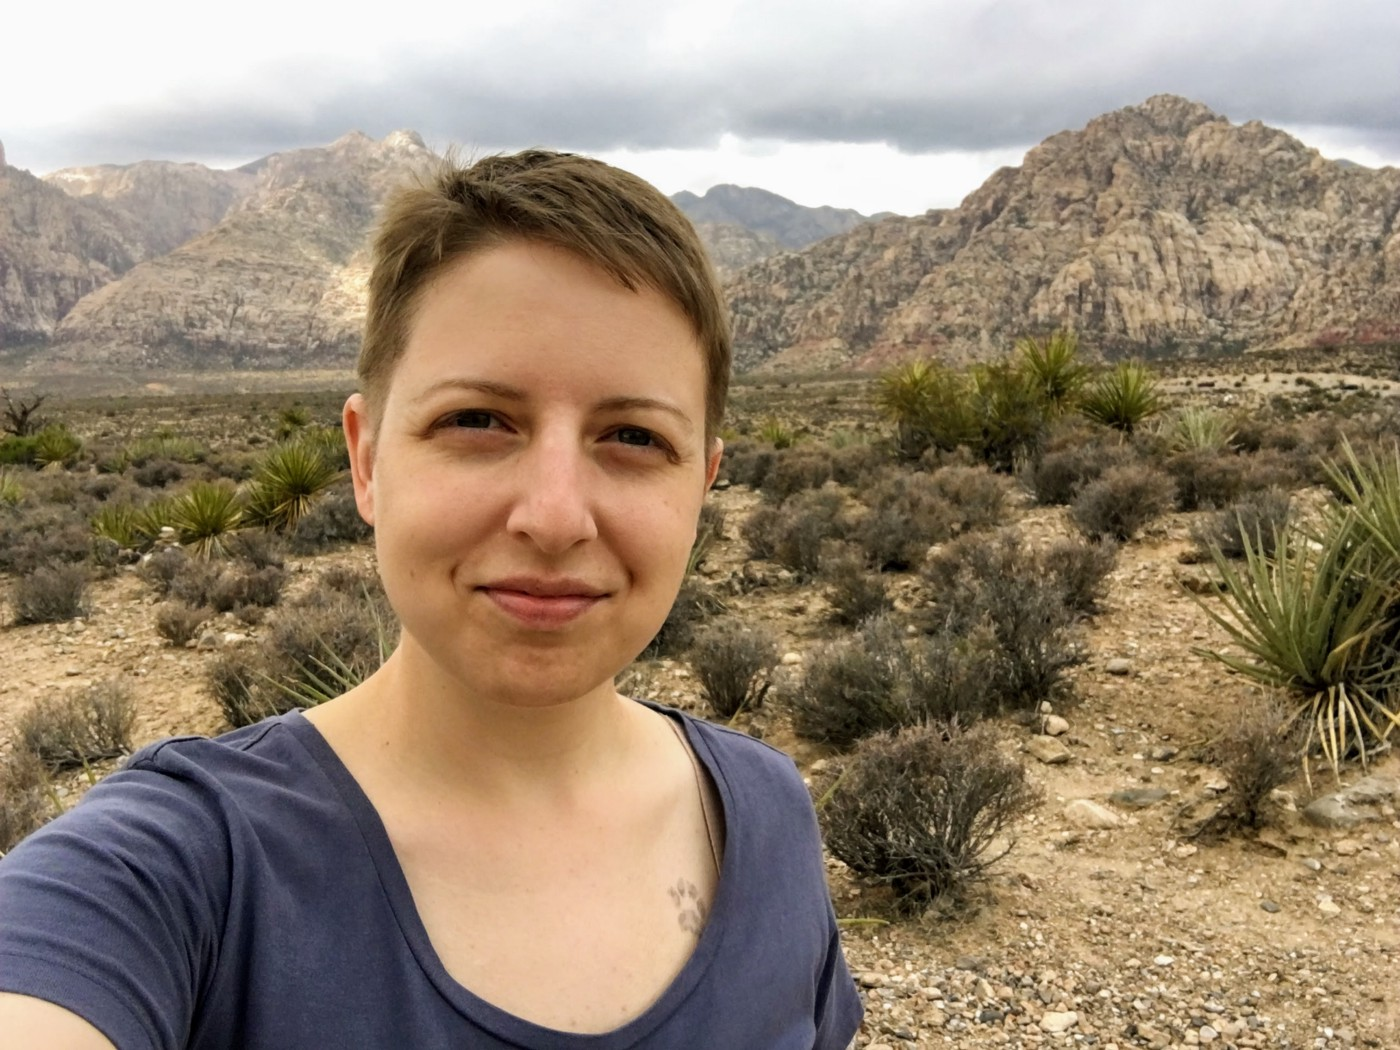 Selfie photograph of a white woman with short brown hair standing in the desert. She is slightly smiling at the camera. There are rock formations in the distance and shrubby plants in the foreground.